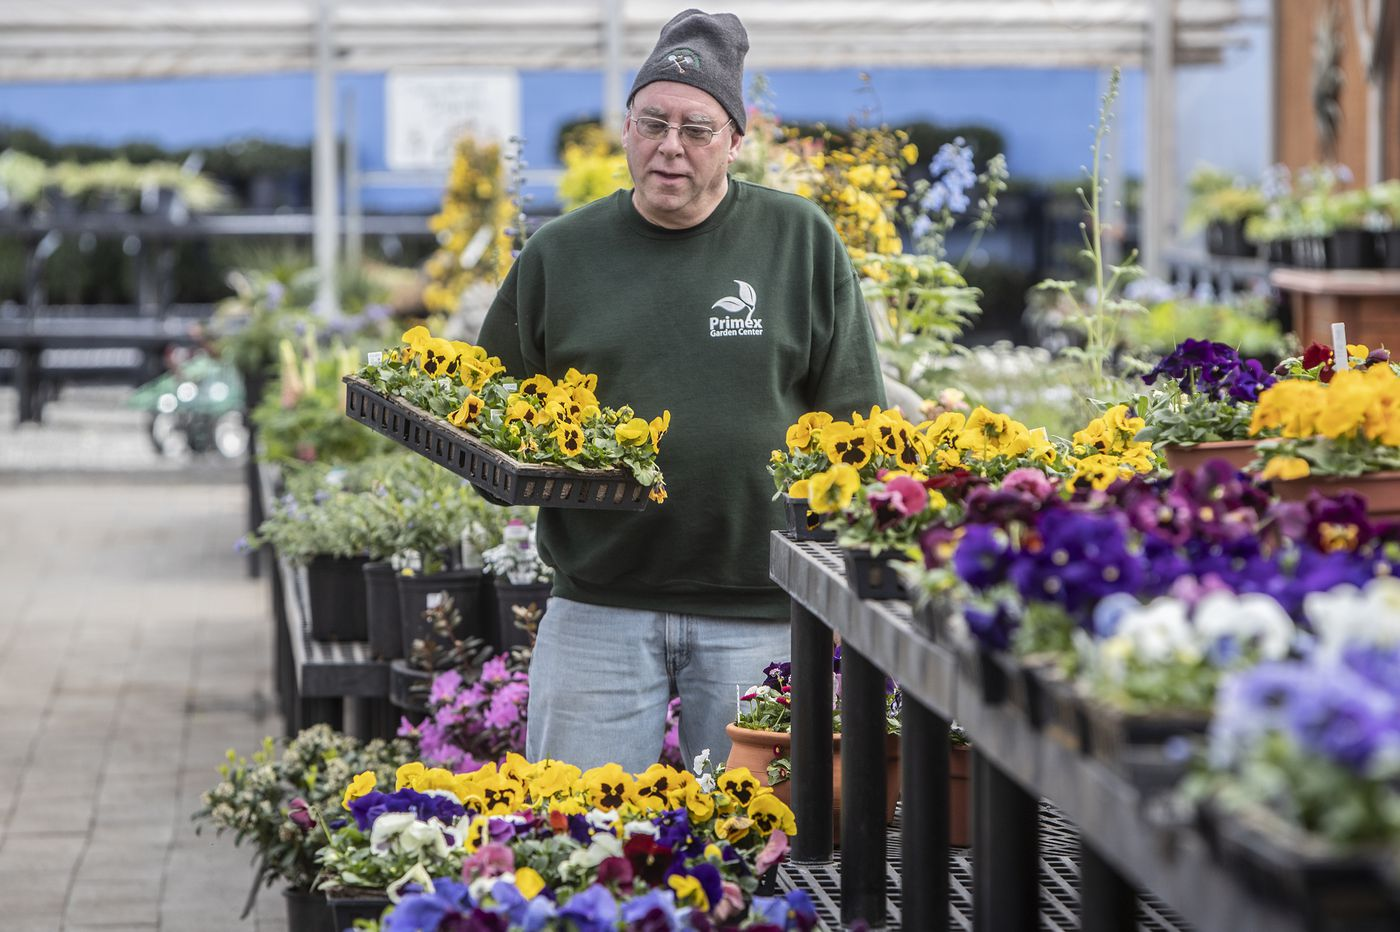 For many Philly-area garden centers, the coronavirus outbreak brings a silent spring